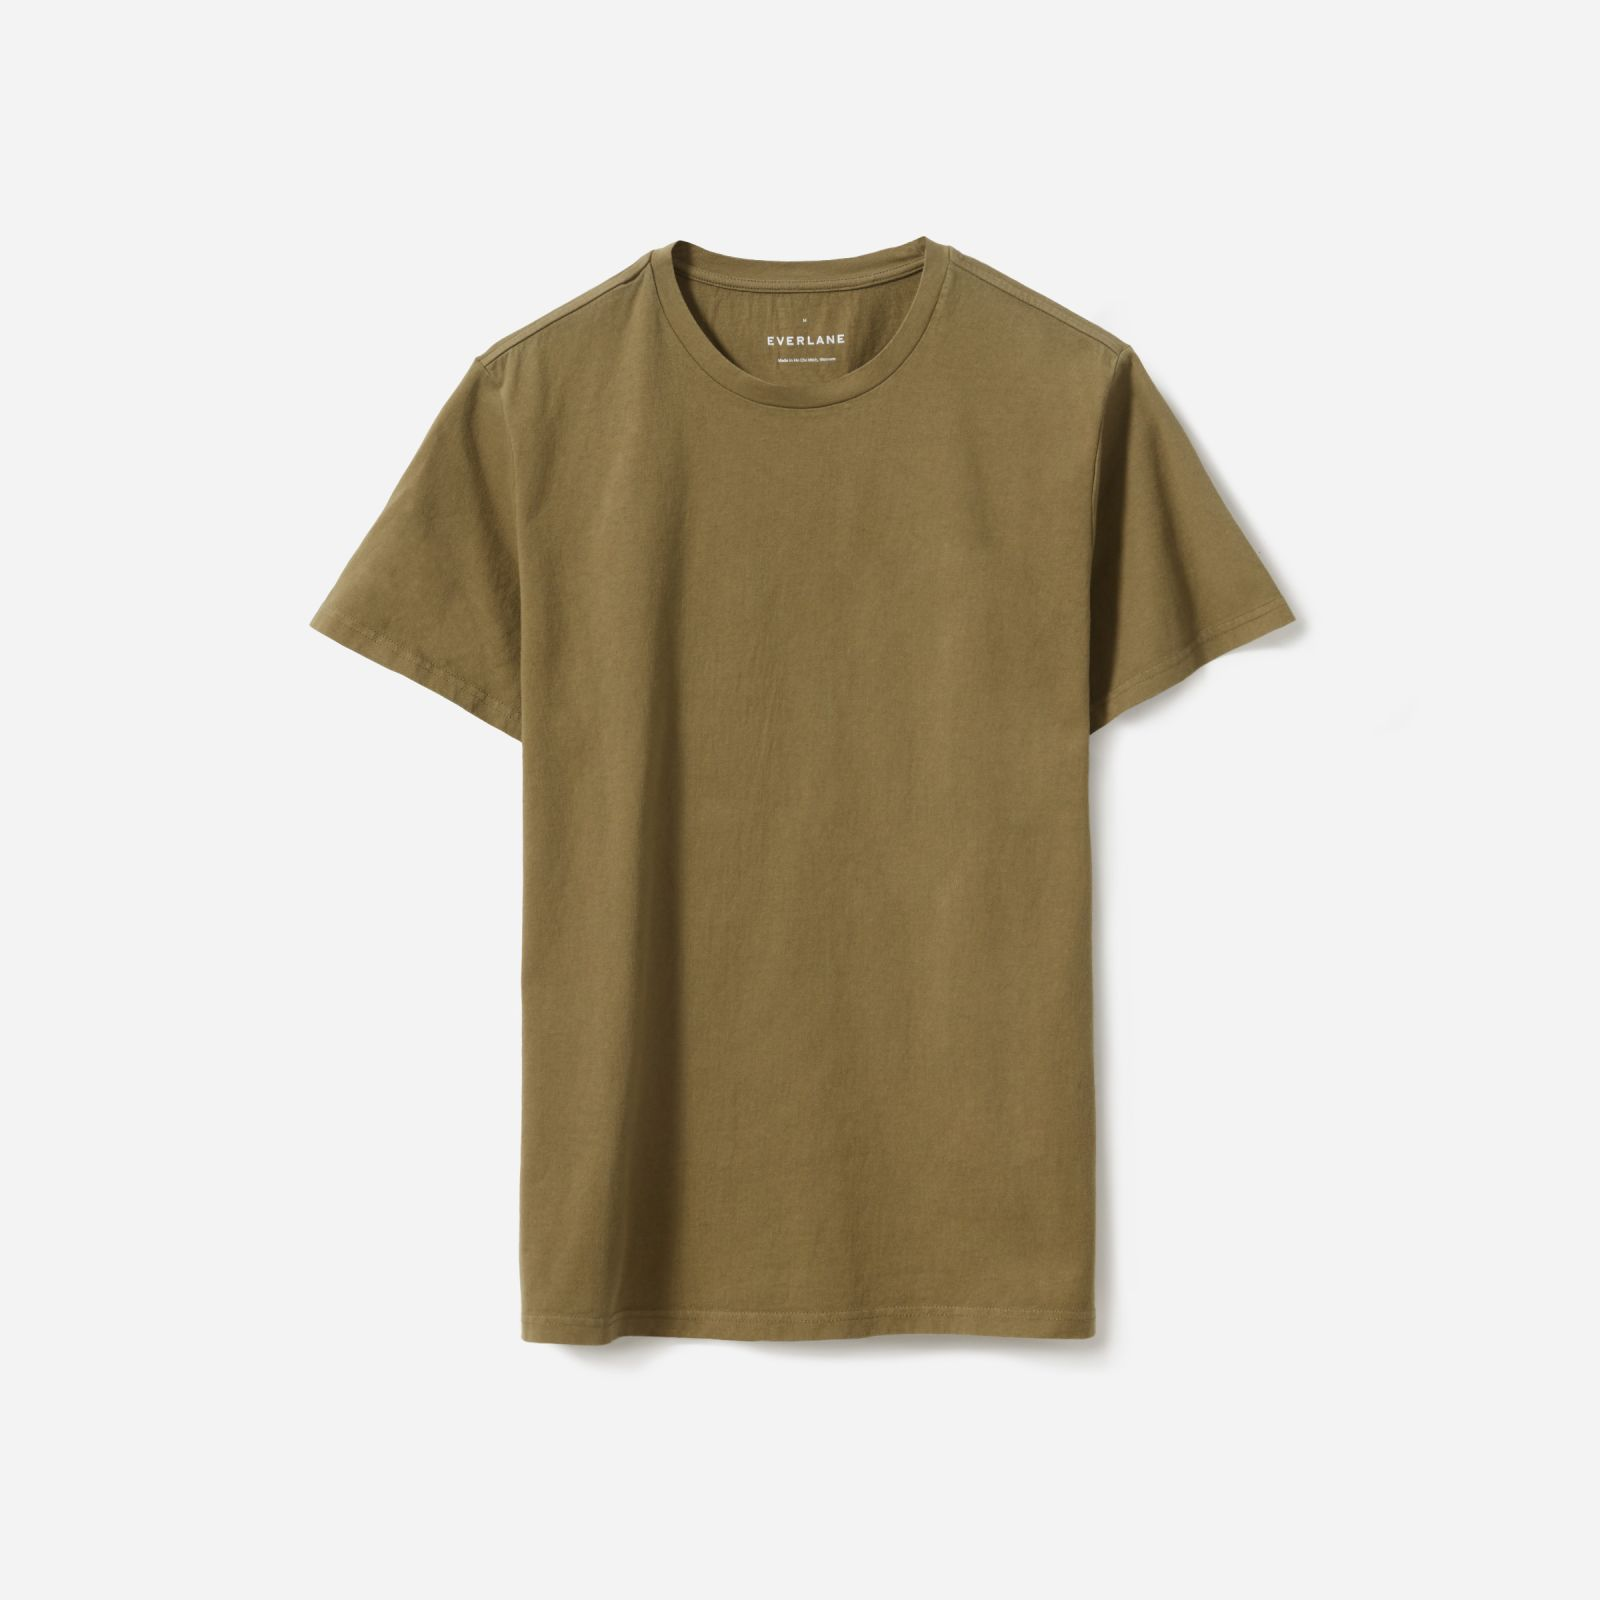 men's heavyweight crew t-shirt by everlane in washed moss green, size xxl